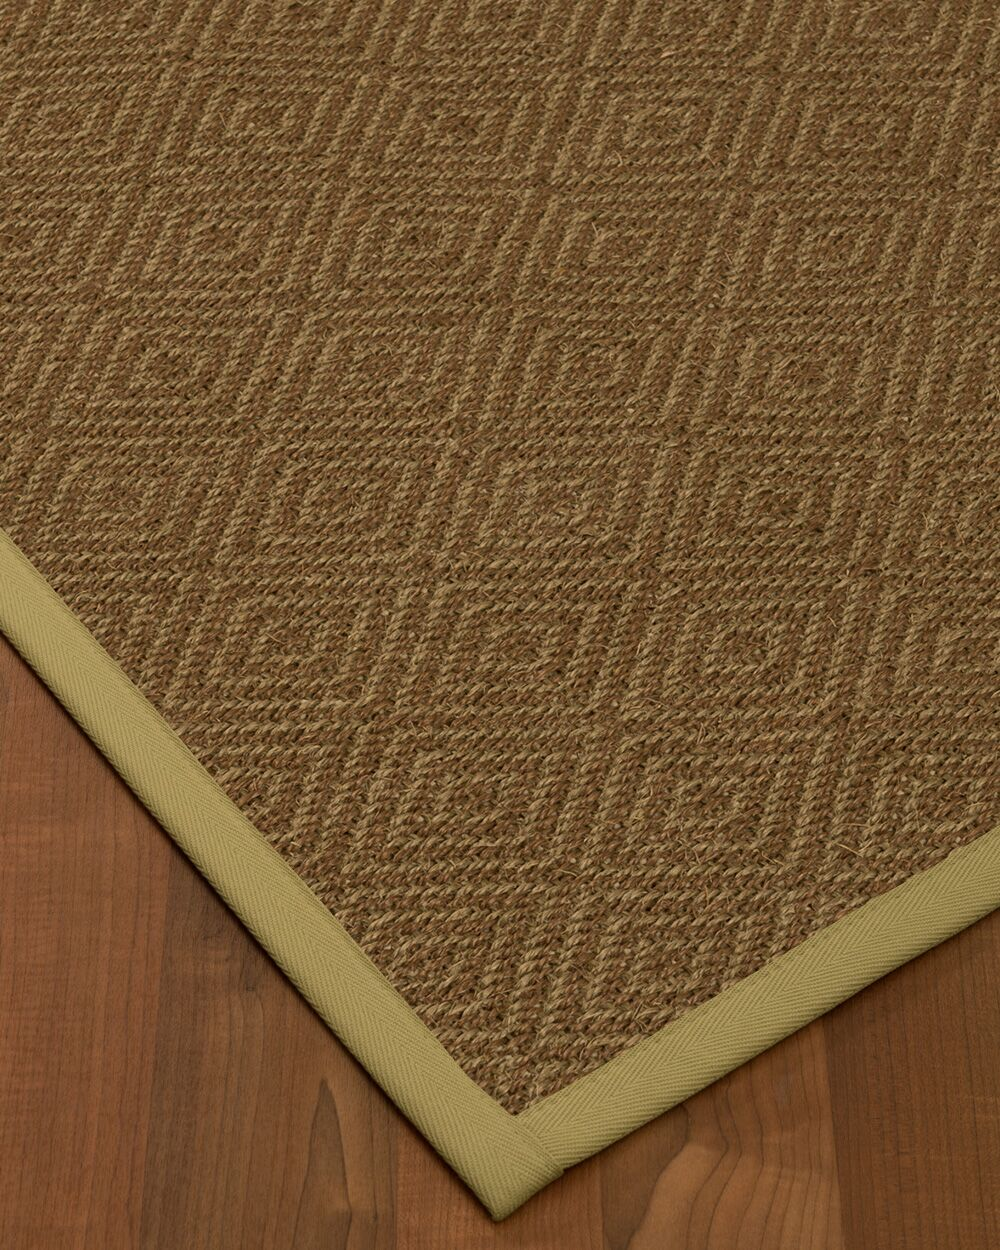 Magnuson Border Hand-Woven Brown/Natural Area Rug Rug Size: Rectangle 5' x 8', Rug Pad Included: Yes